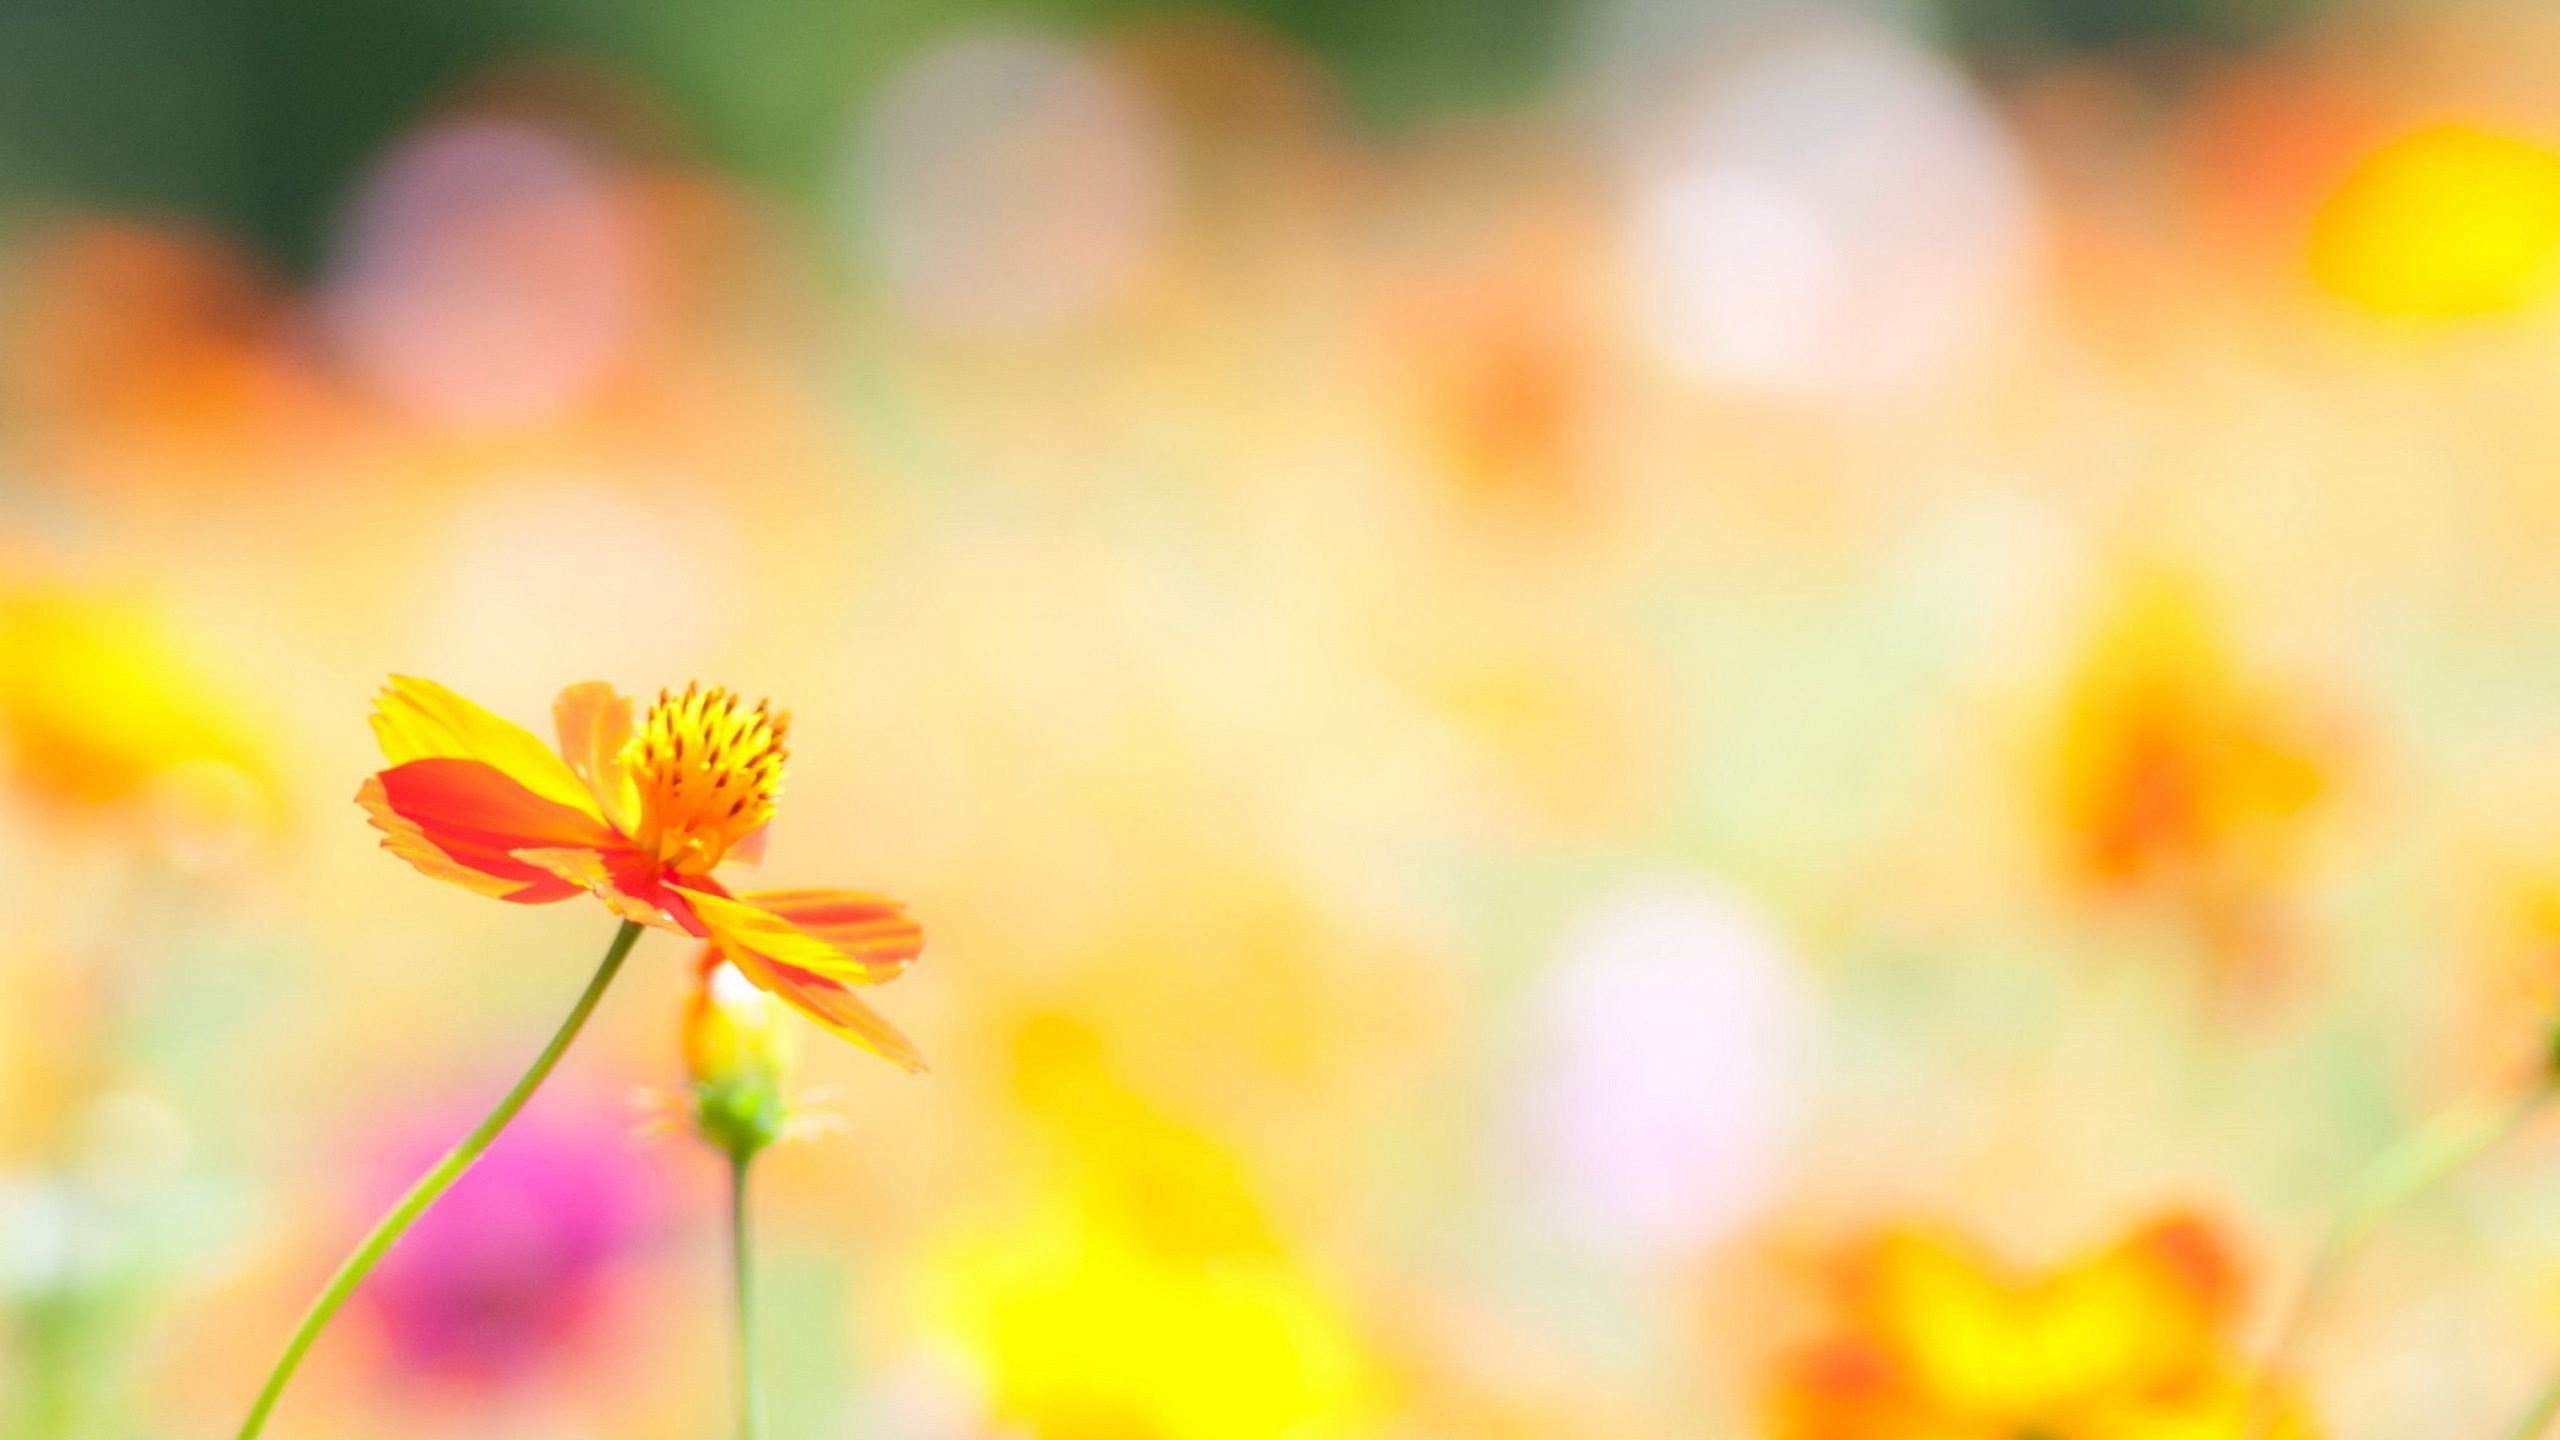 Summer Flower Wallpapers Images HD Pictures 2560x1440